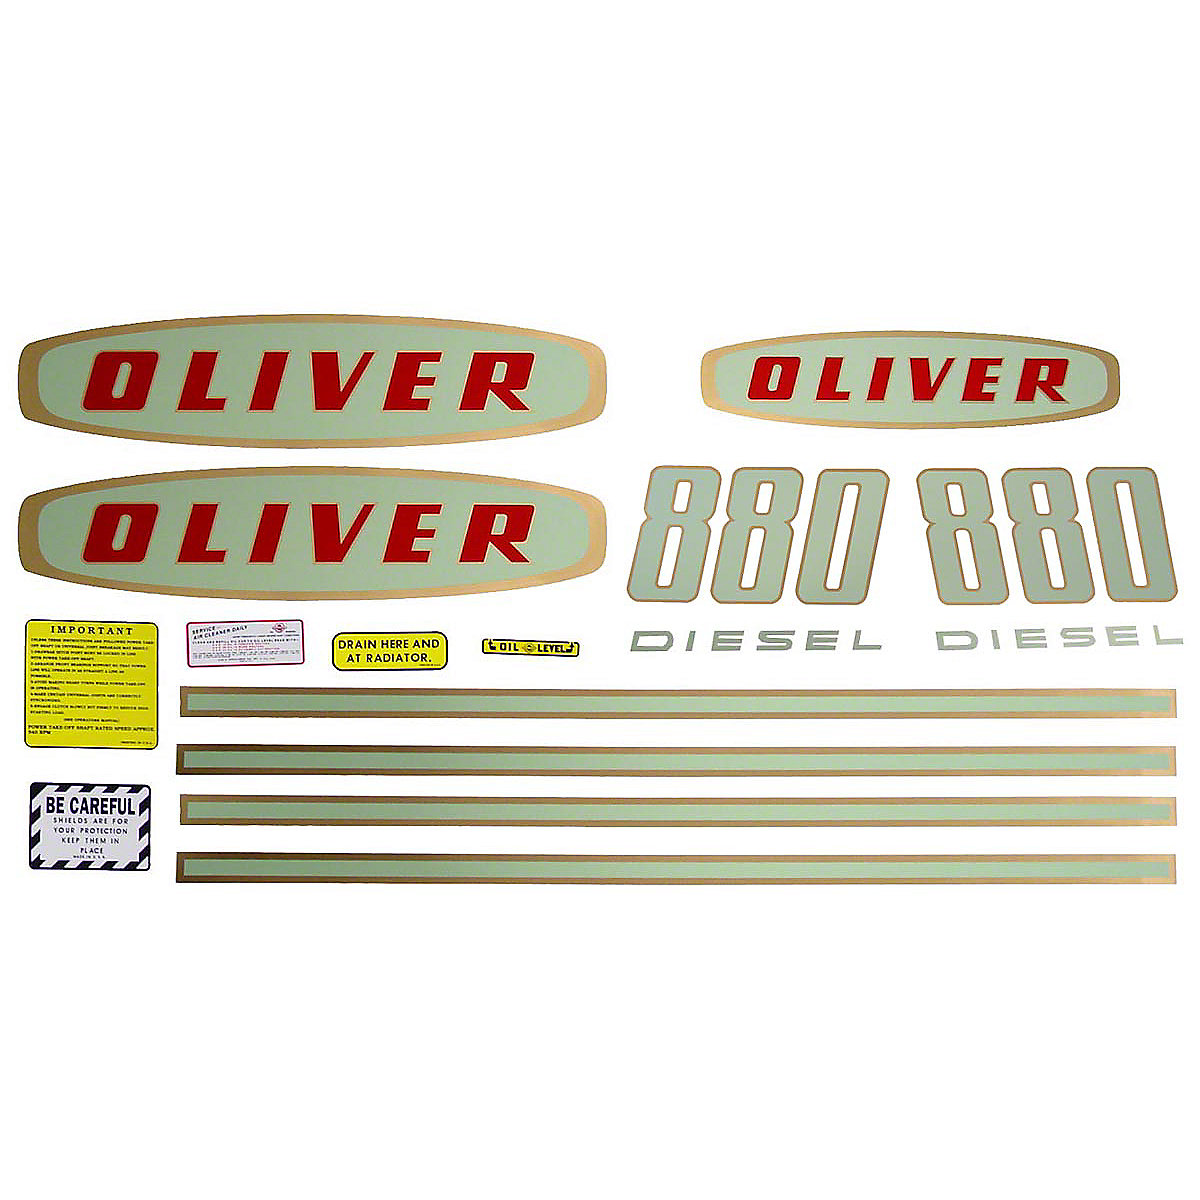 Operators Manual - Oliver 1650 · Mylar Decal Set For Oliver 880 Diesel  Tractors. Up to SN#: 112250.